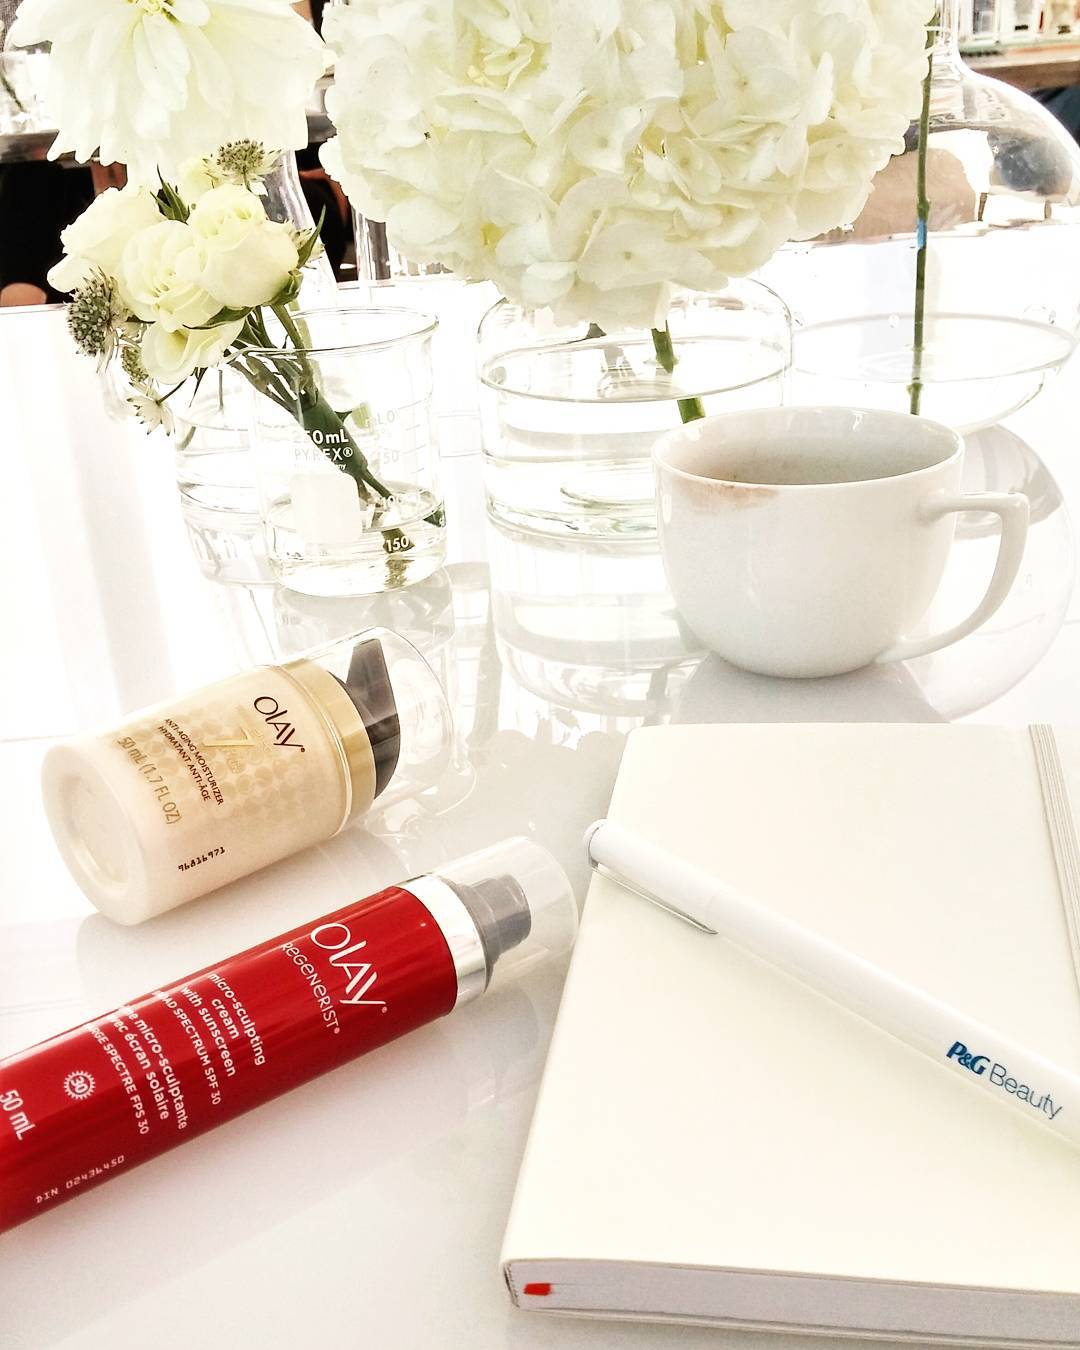 Back-To-School with @olay's skin care academy! Learning all abt skin testing, the role genes actually play & innovative ingredients all to help launch the new #Olay skinadvisor! Visit skinadvisor.olay.com to learn your skin age, diagnose trouble areas & more!